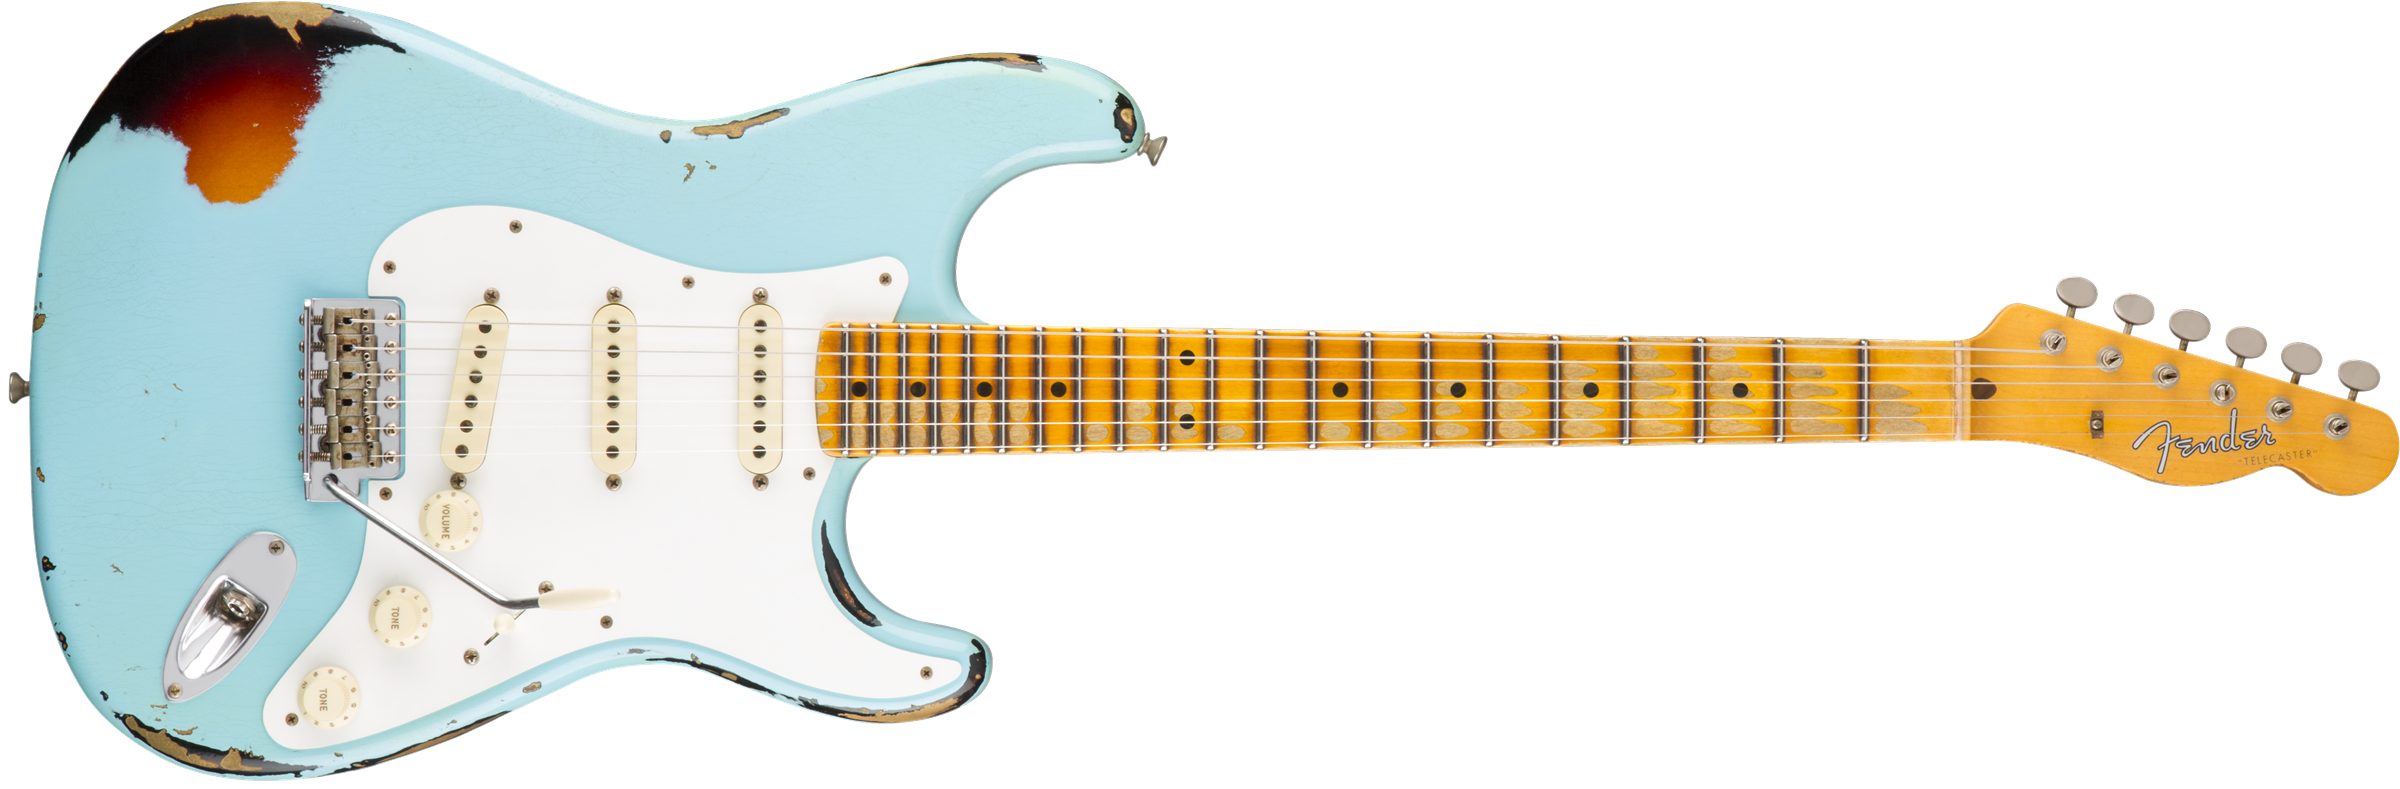 Fender Heavy Relic Mischief Maker - Fender PNG